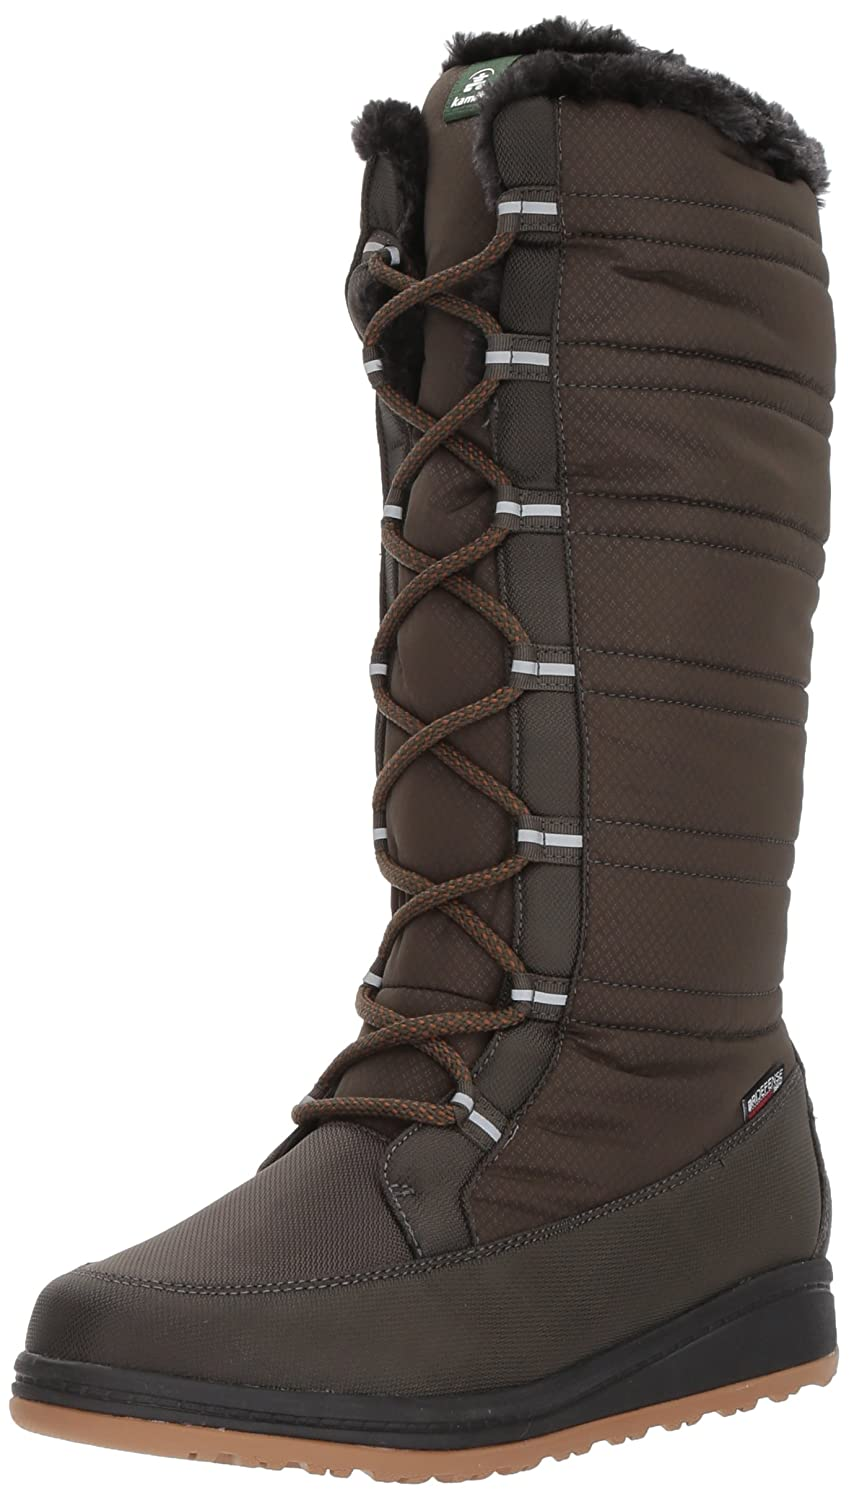 Kamik Women's Starling Snow Boots NK2163